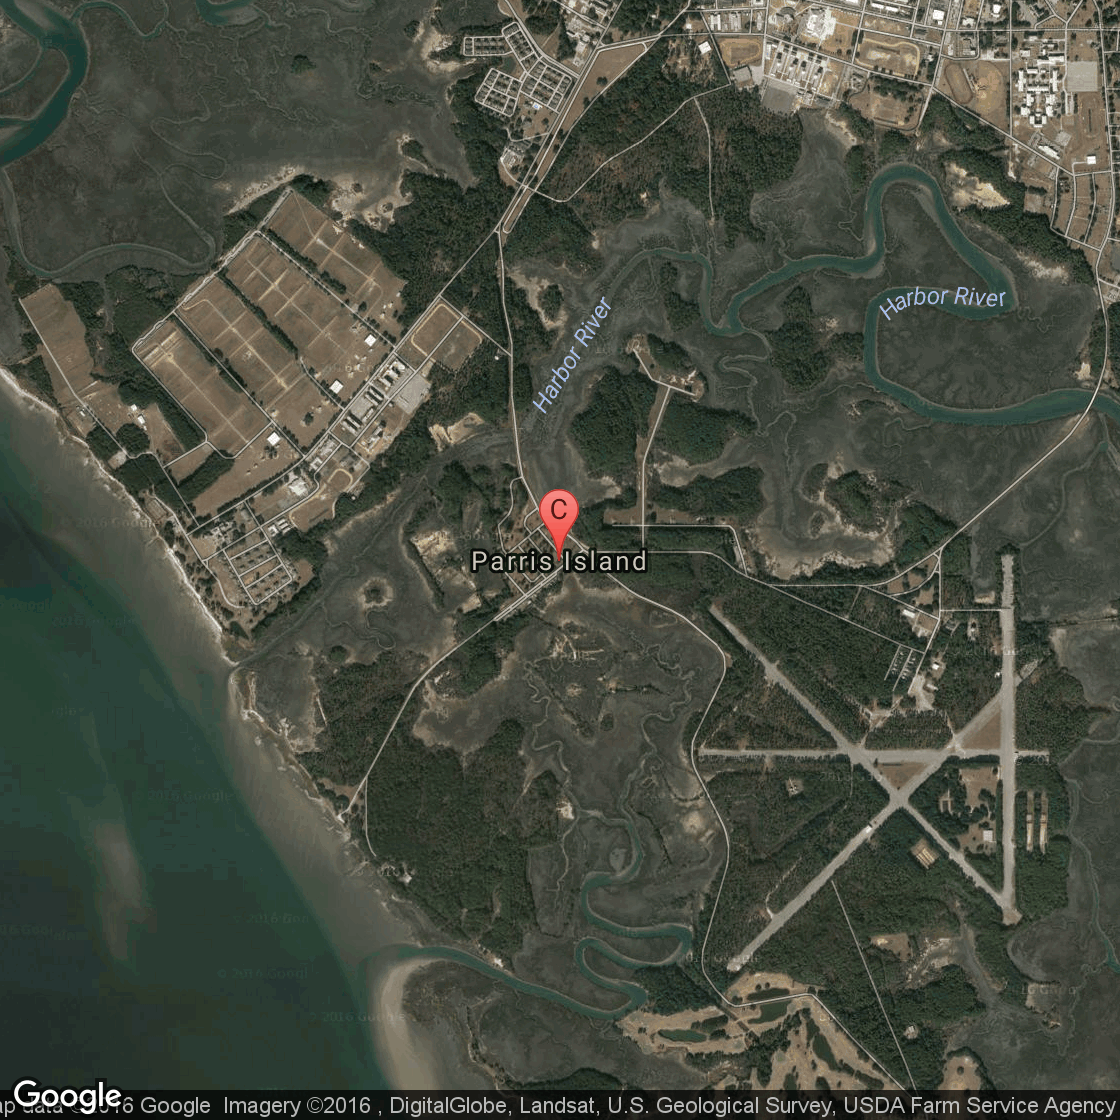 The Closest Hotels To The Marine Base At Parris Island